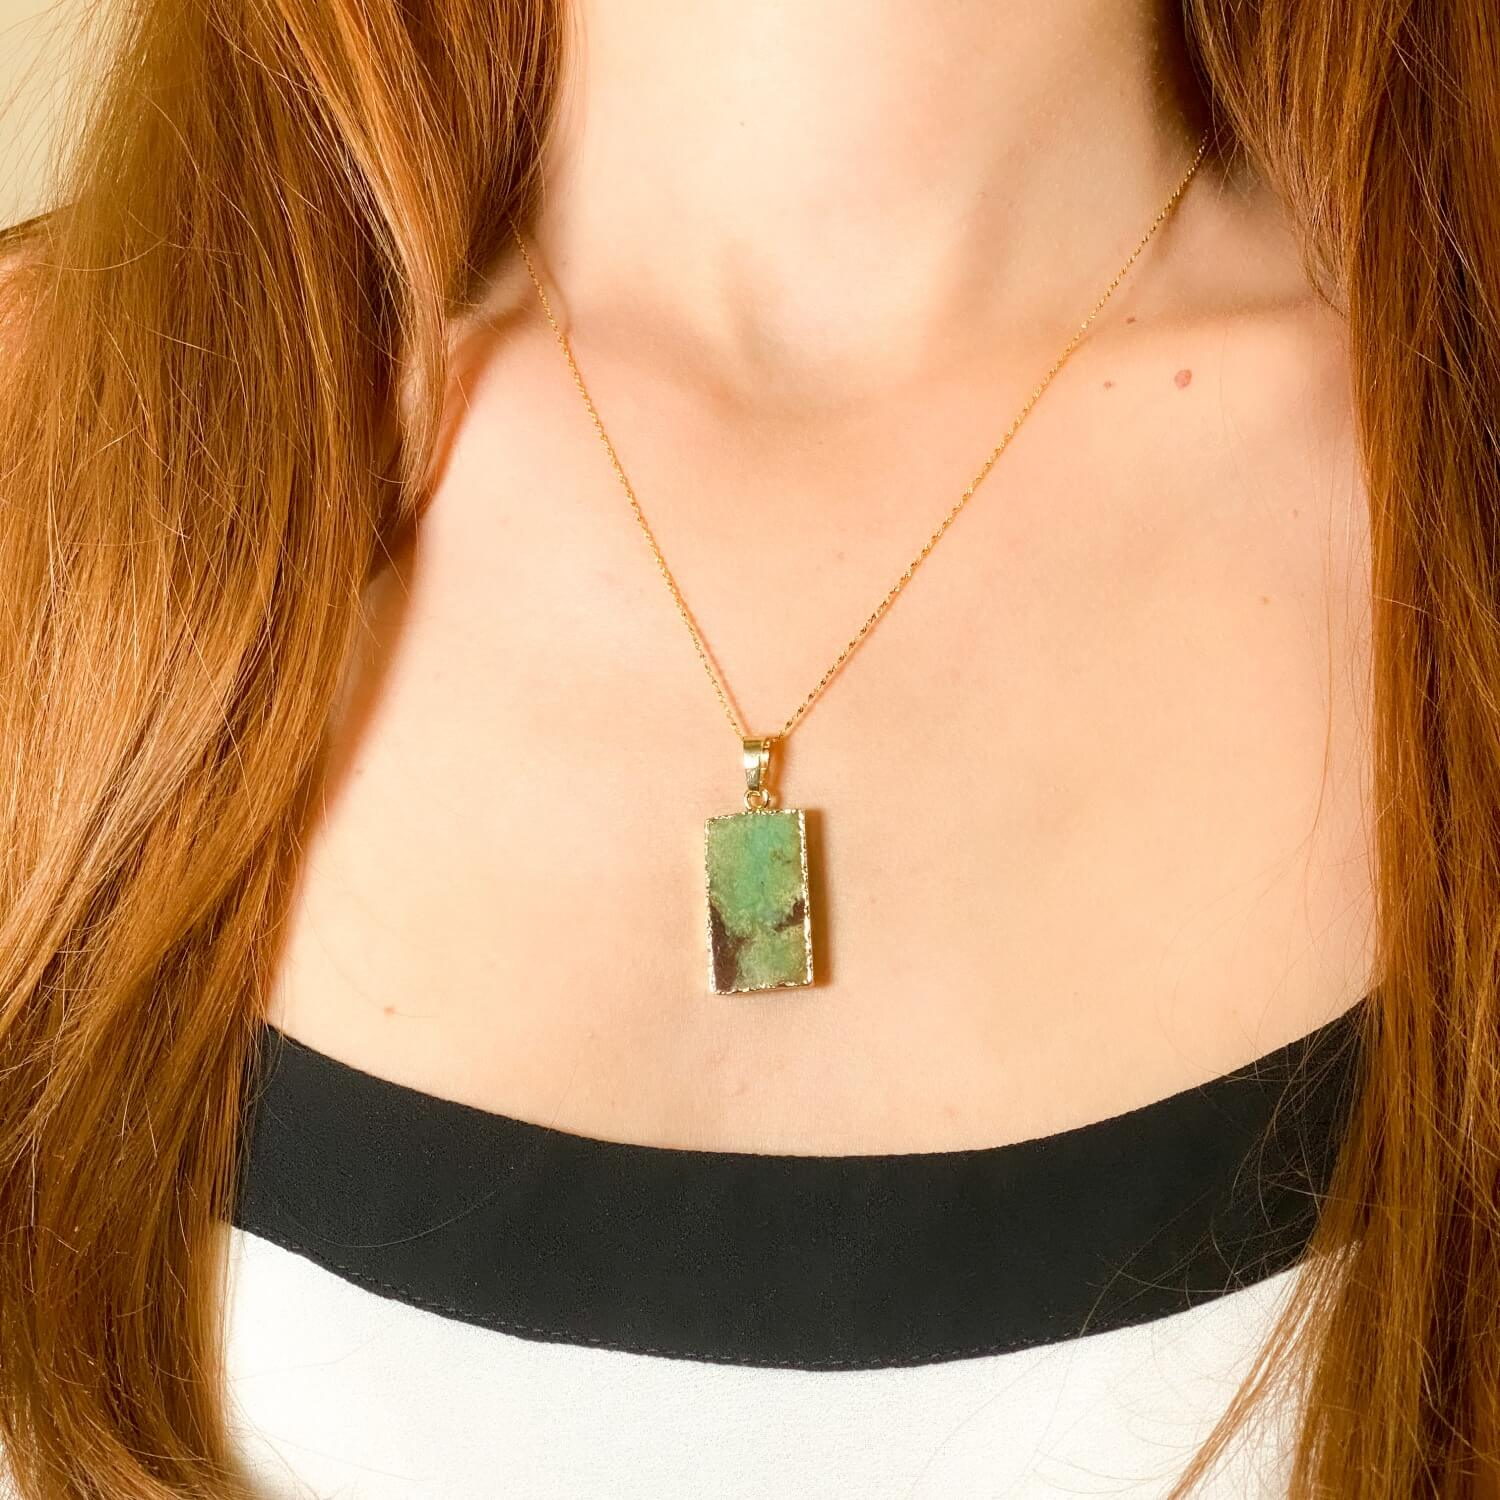 Chrysoprase Necklace jewelry gold plated sterling silver asana crystals 5